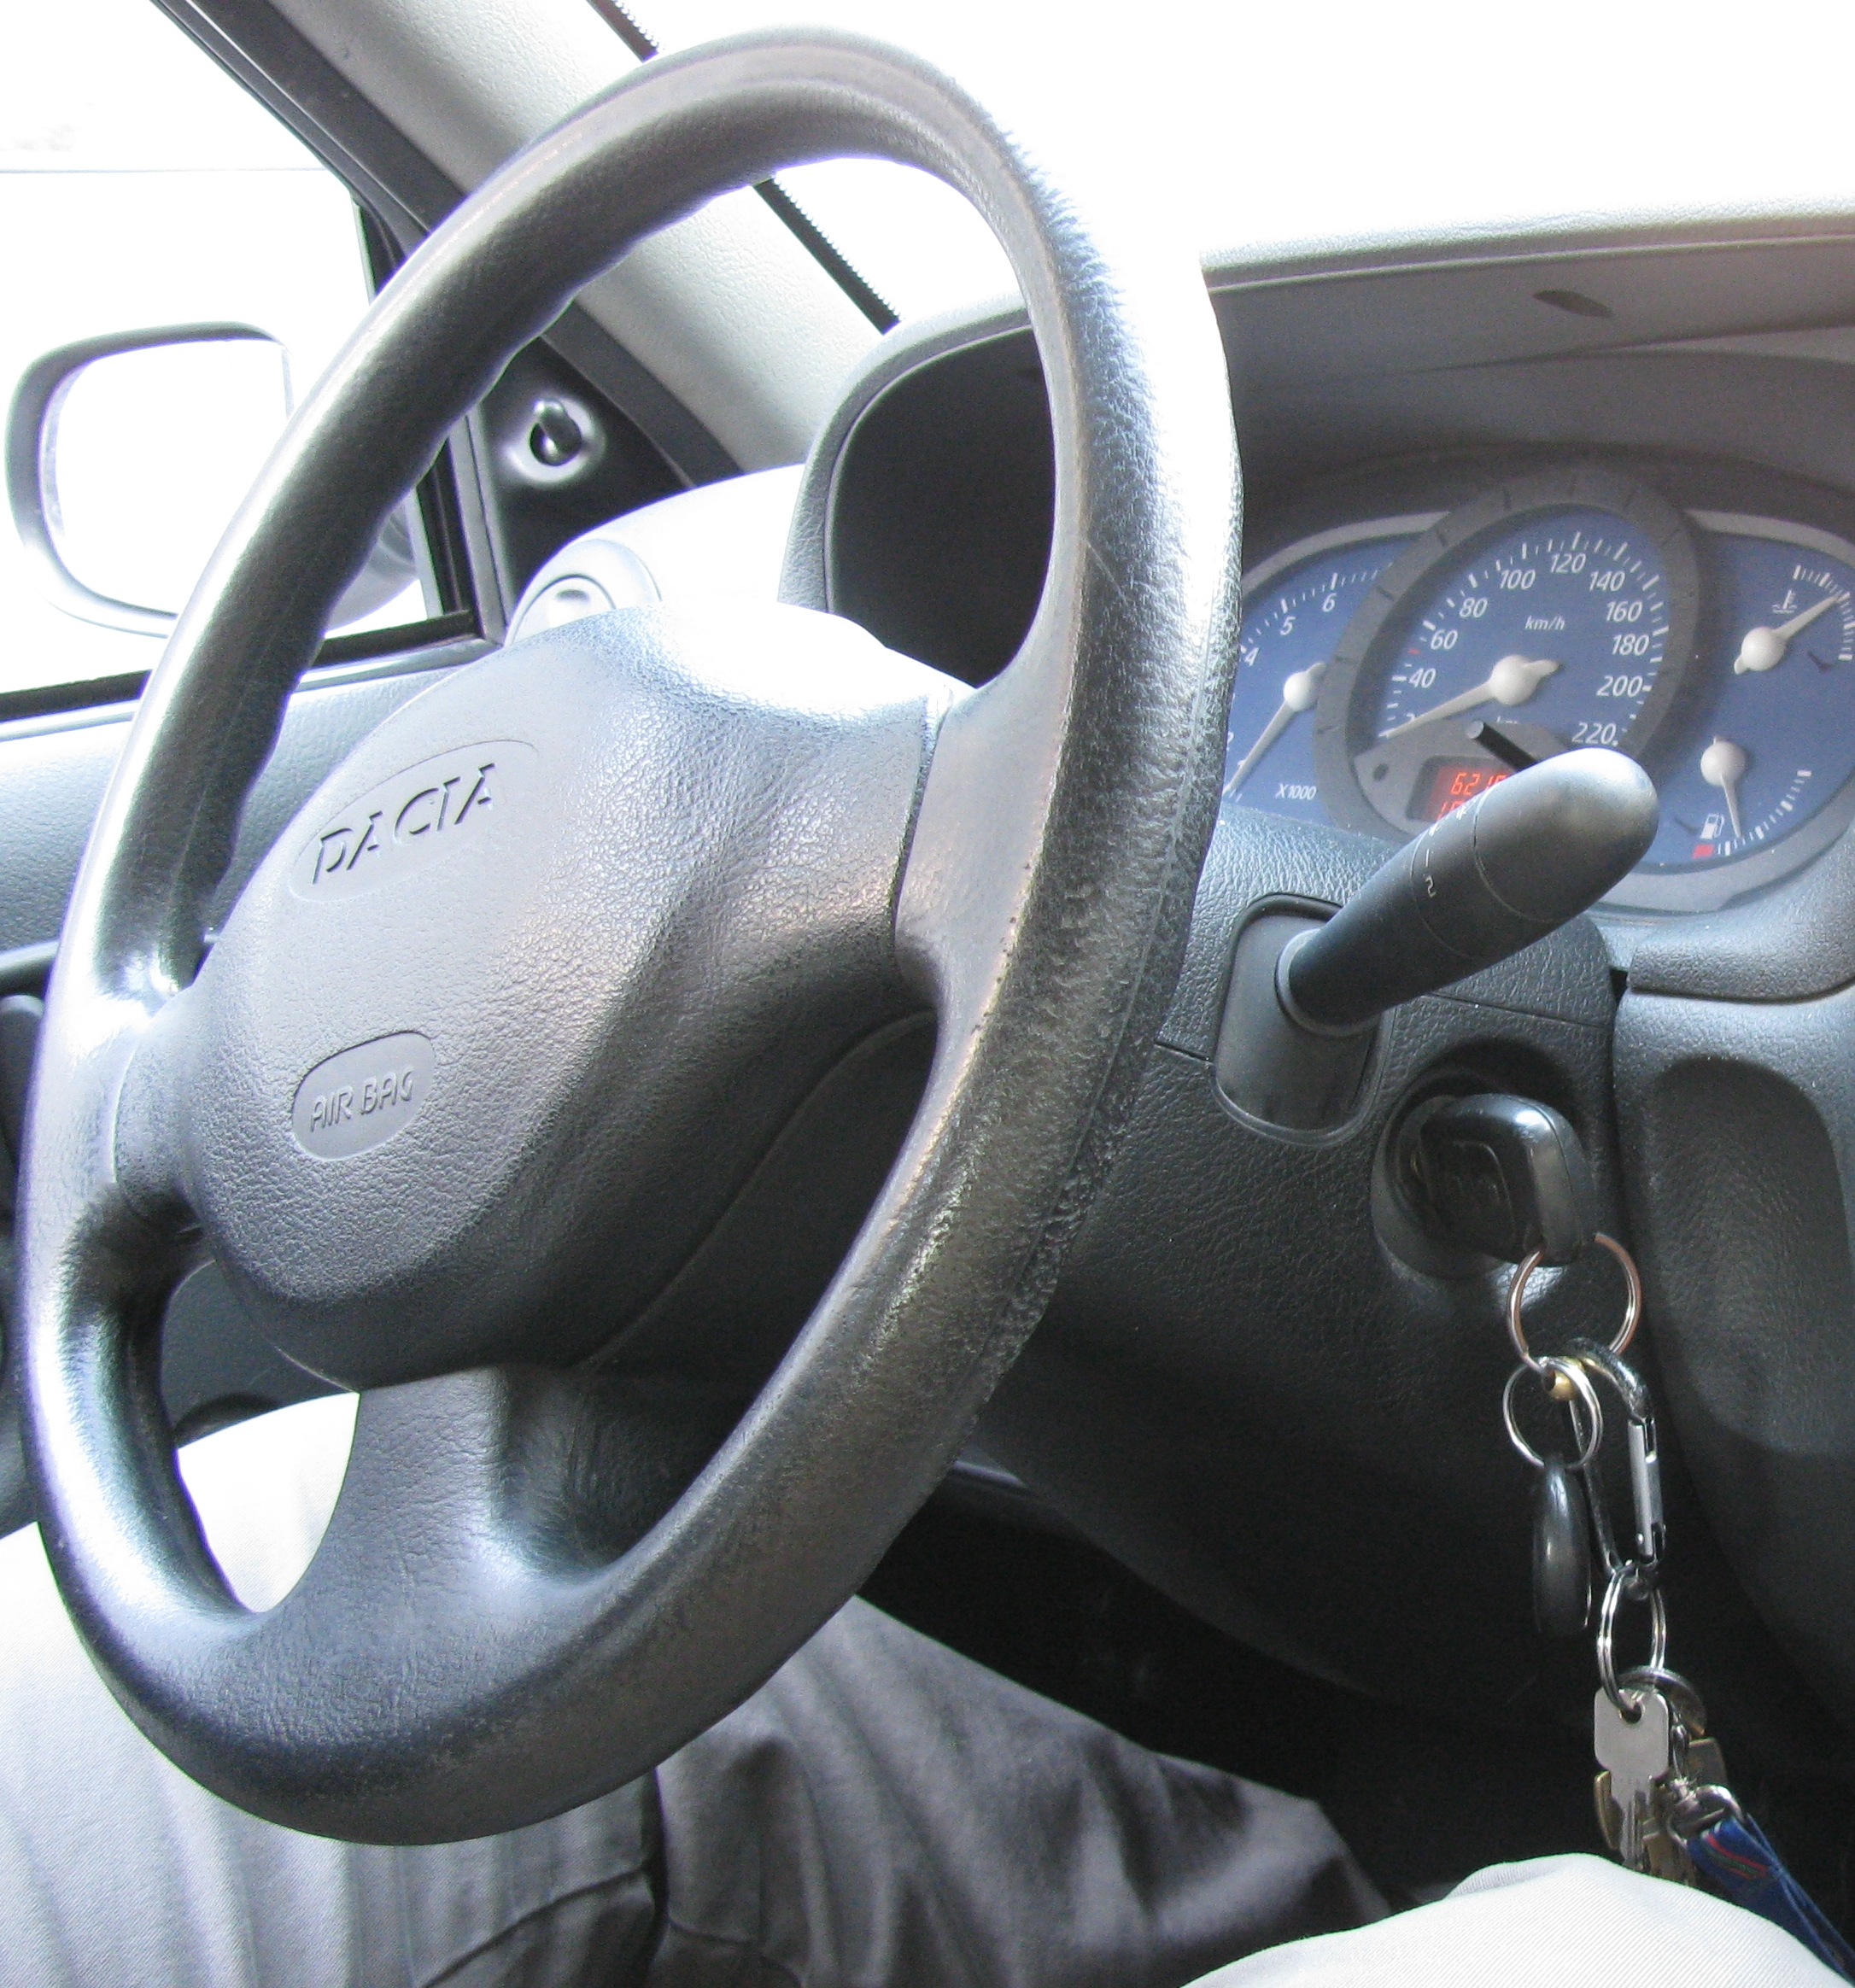 Key in the Ignition